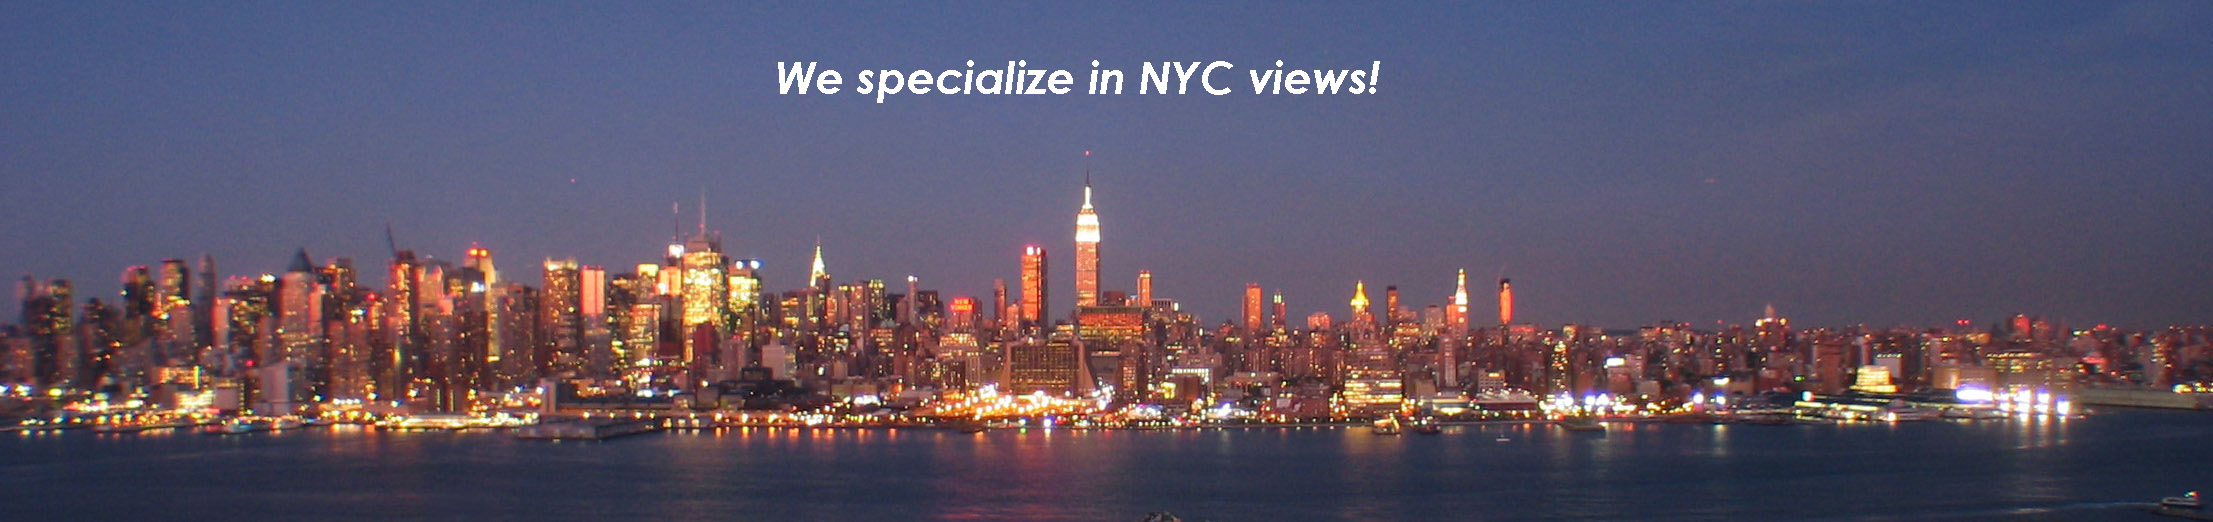 We specialize in NYC views!